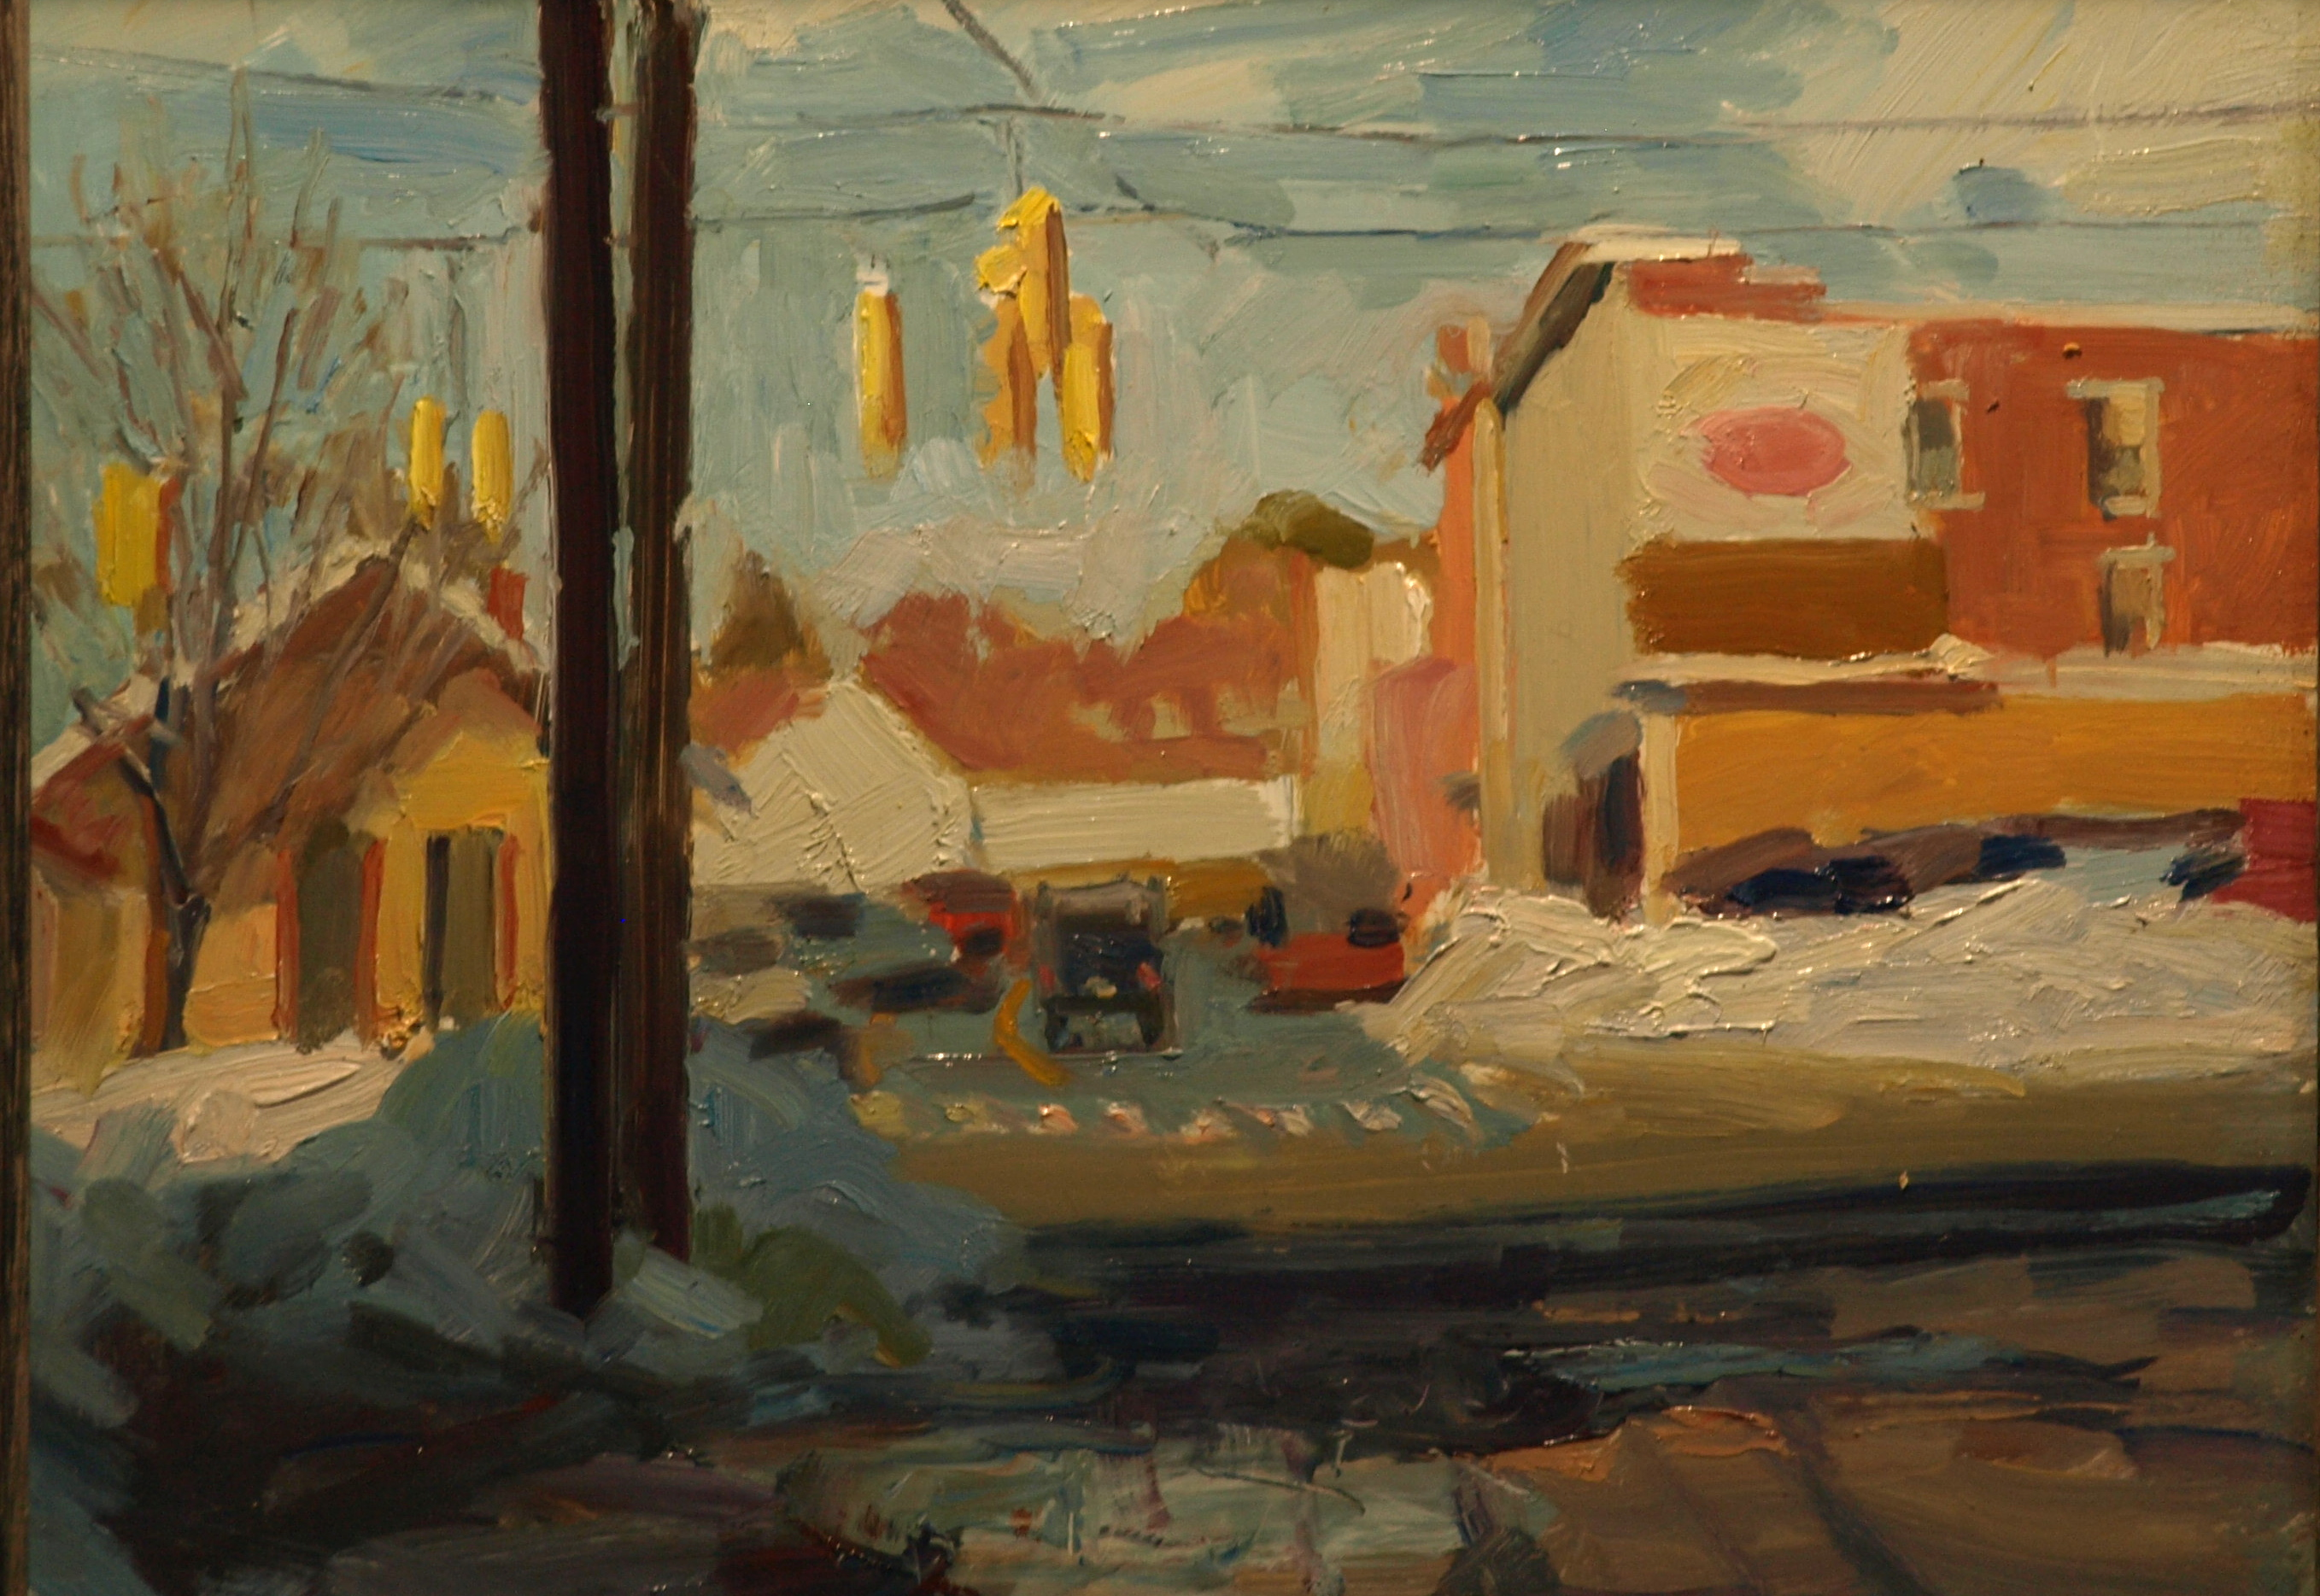 Bridge Street Crossing, Oil on Panel, 12 x 16 Inches, by Susan Grisell, $275